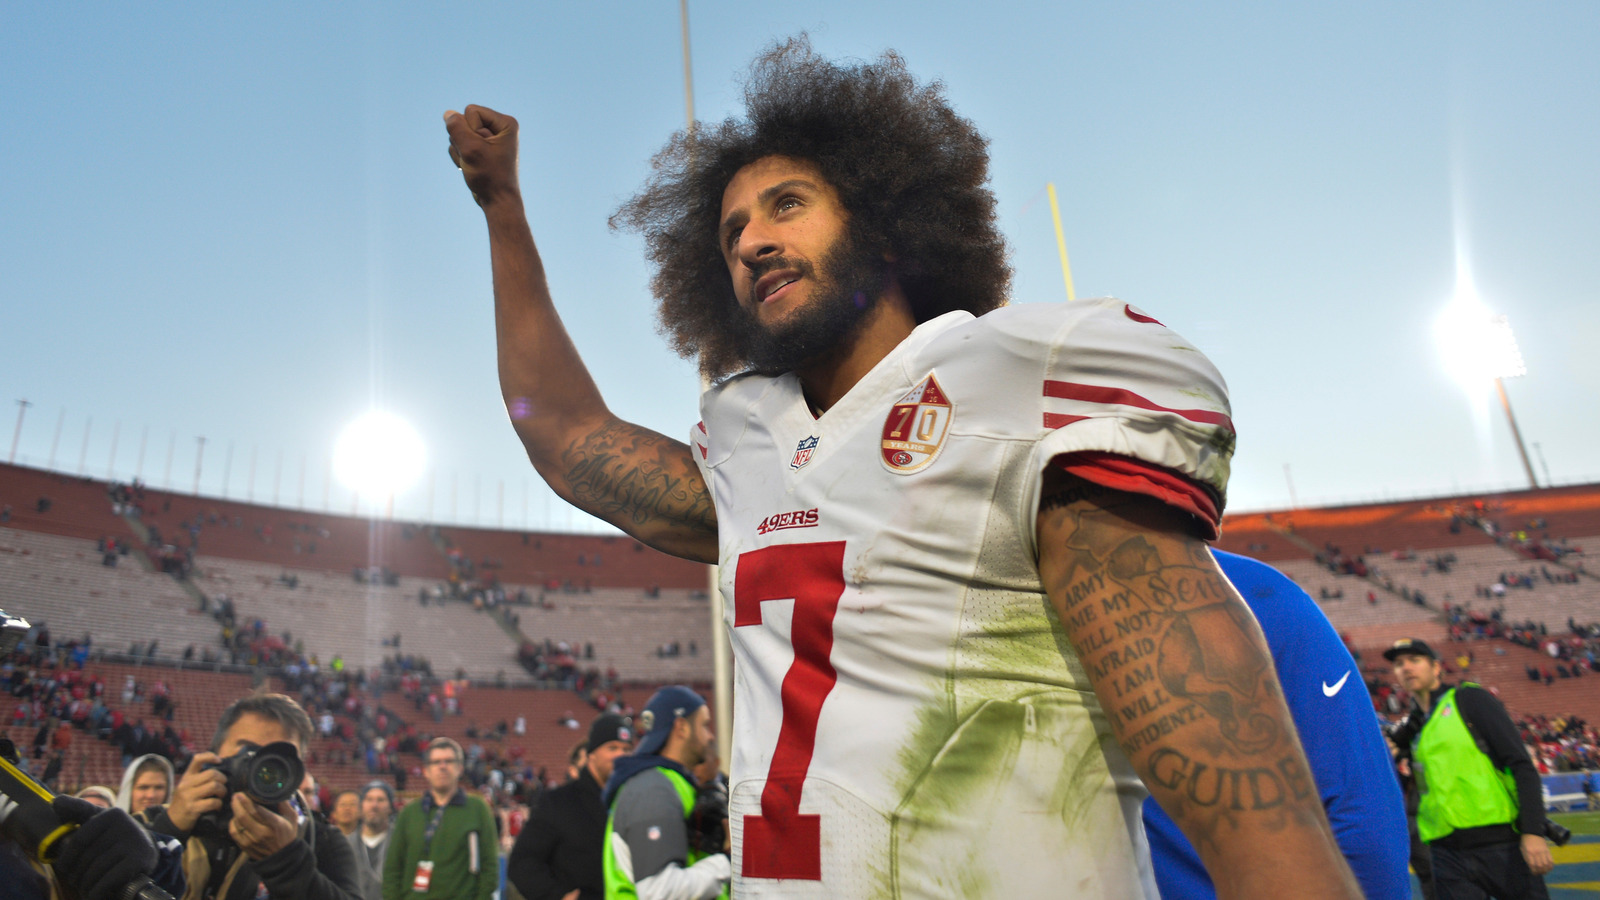 Cuban: NBA would encourage Kaepernick to exercise his 'constitutional rights'